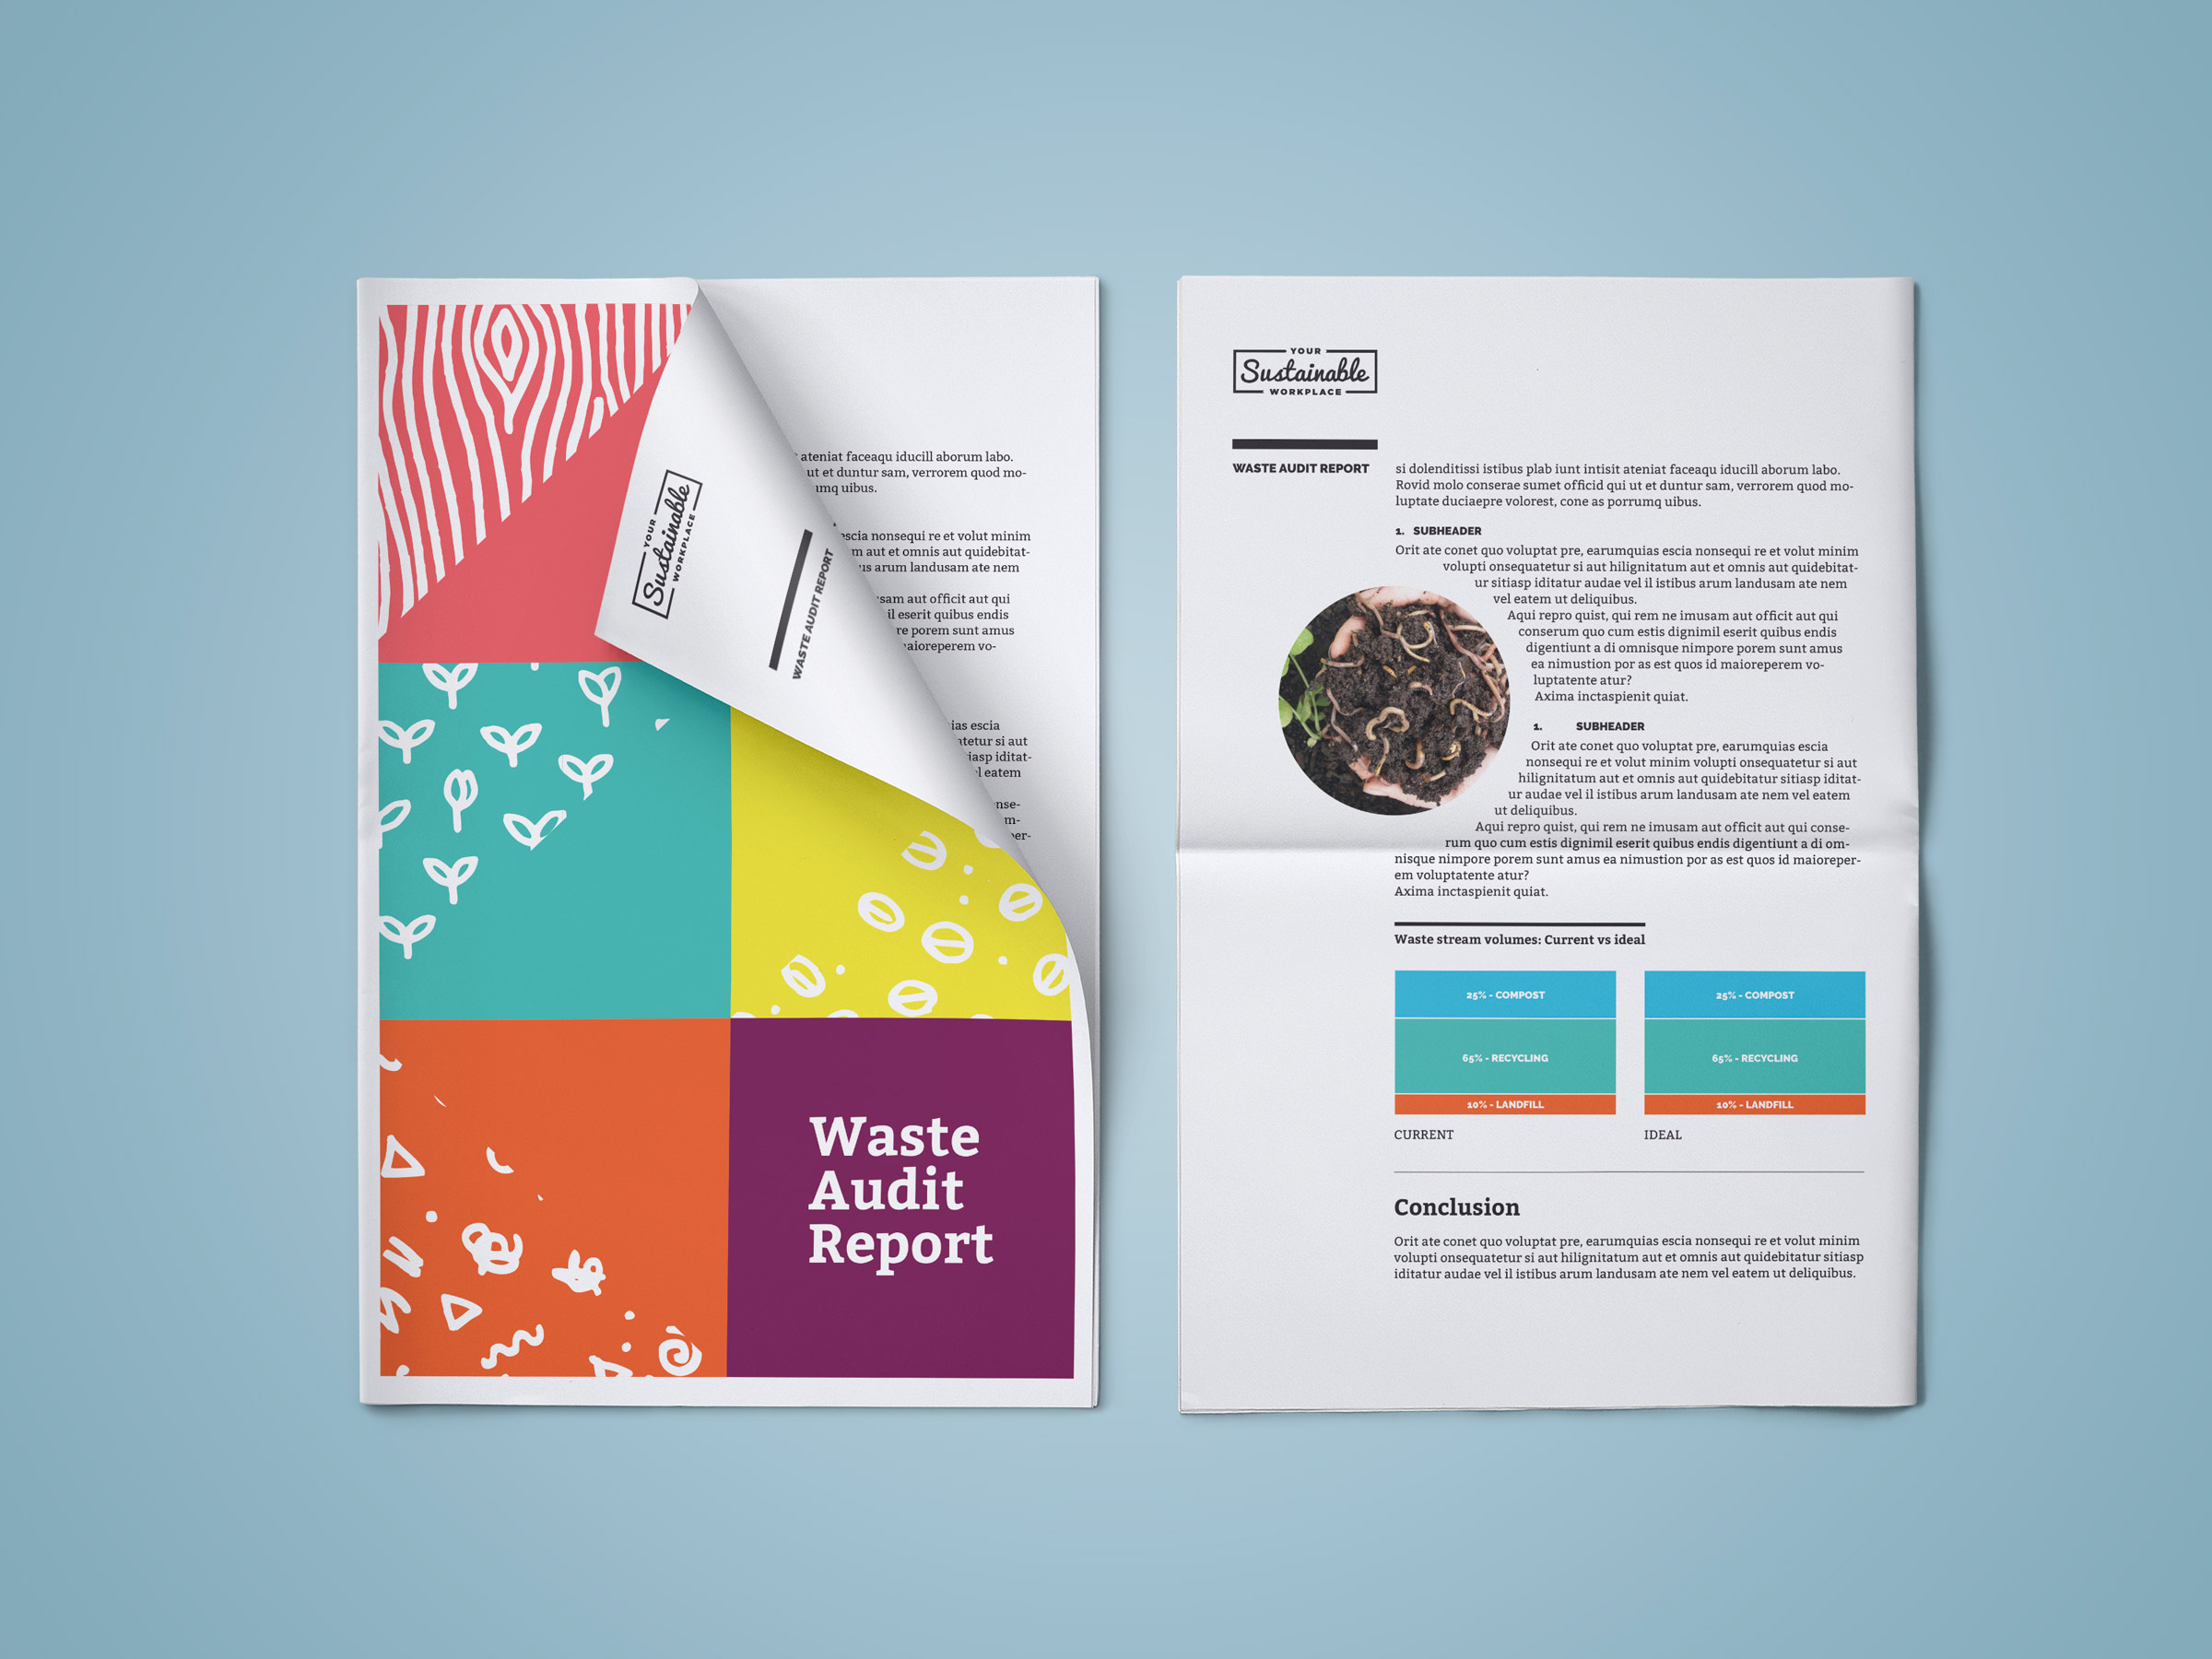 Your Sustainable Workplace waste audit